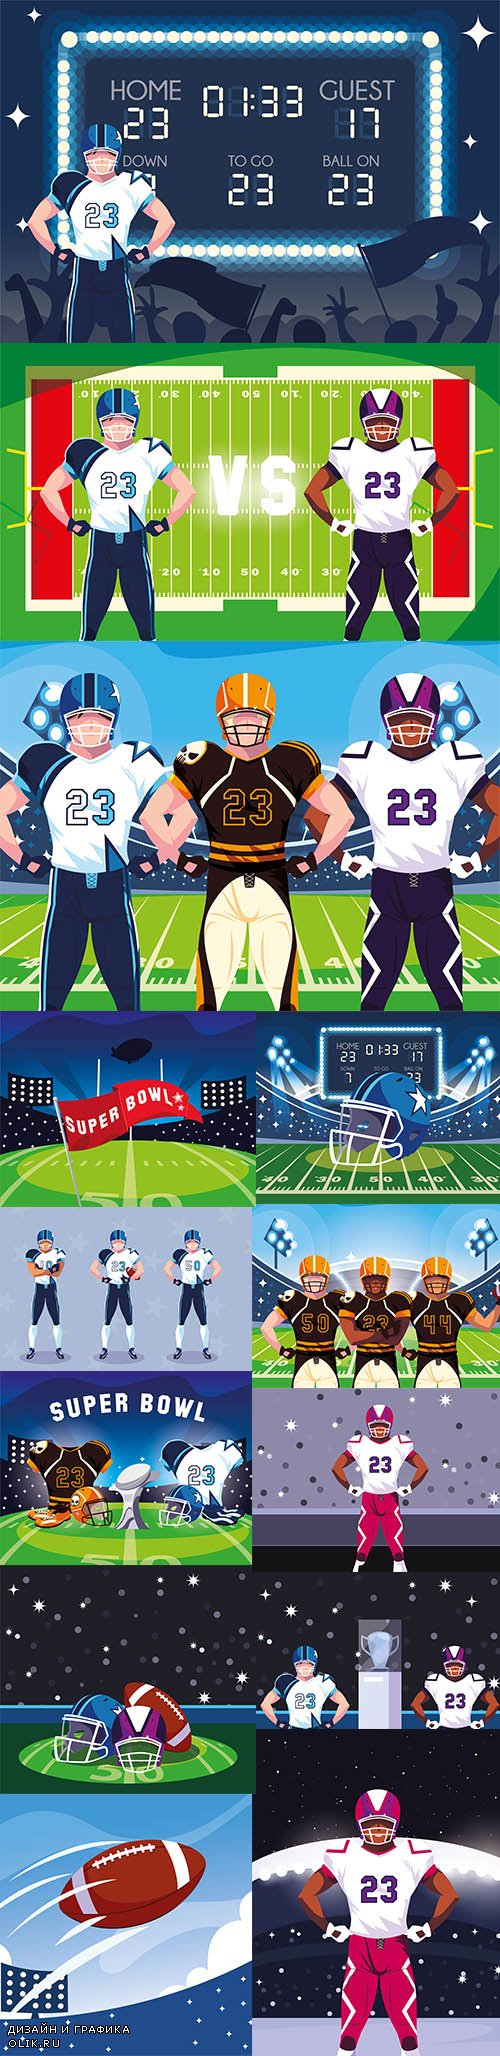 Americal Football Team Players Rugby Sportsmen Illustrations